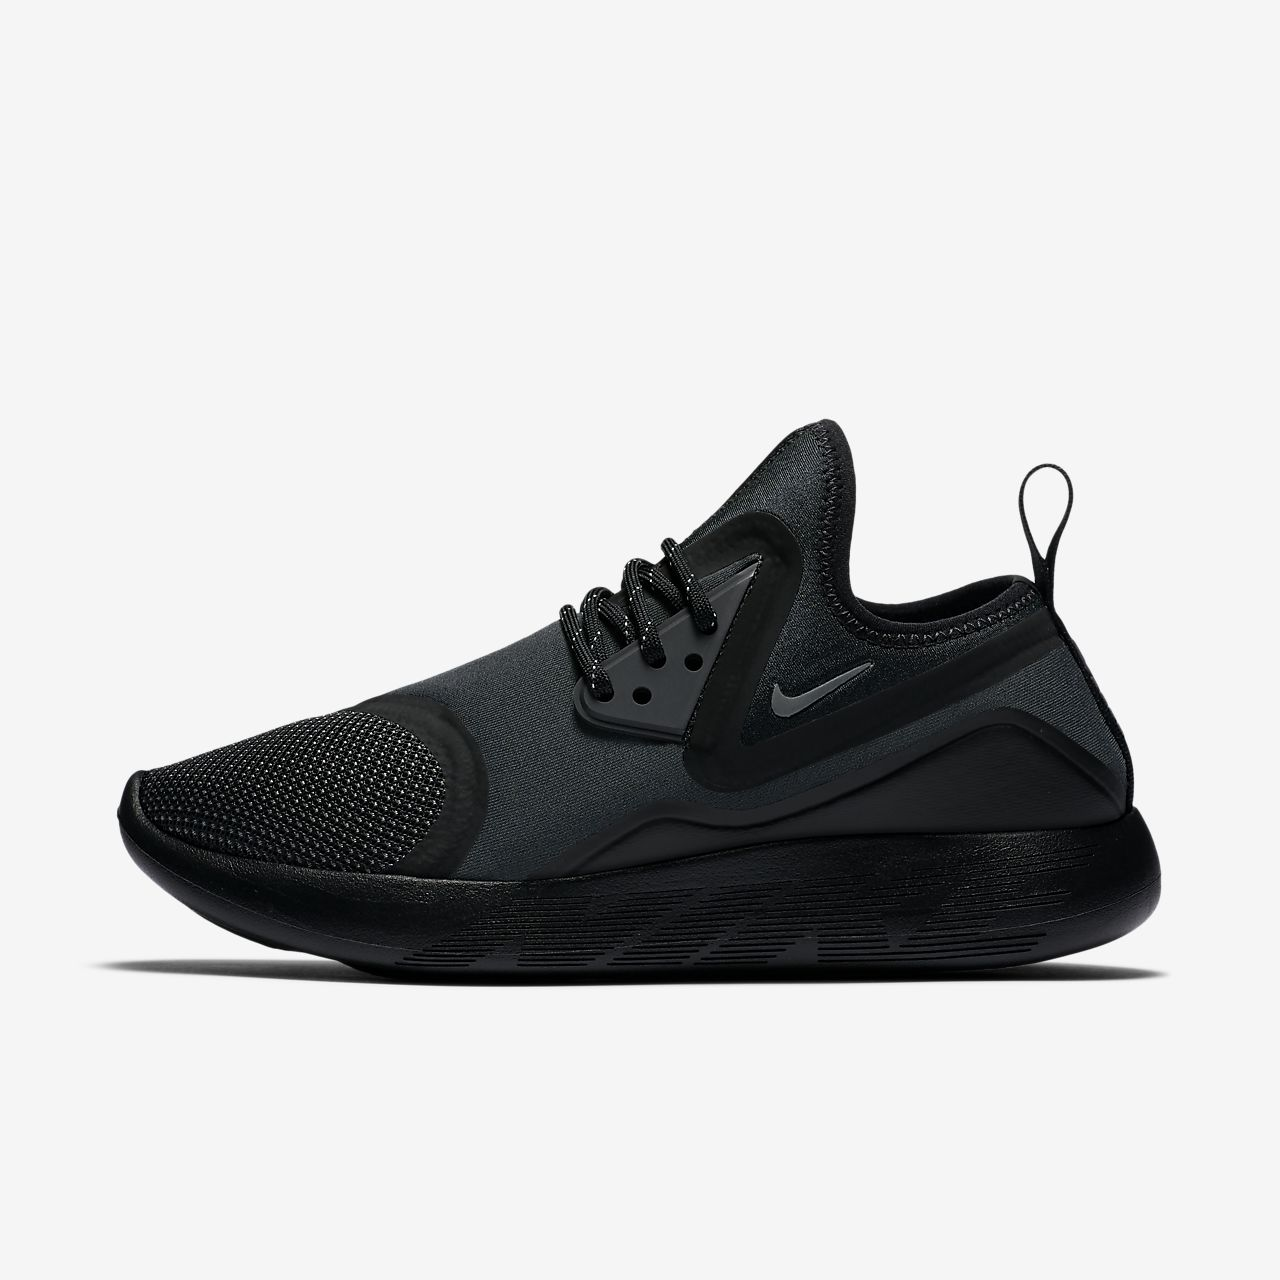 Chaussure Nike Lunarcharge Essential Essential Lunarcharge Pour Ch 6f0a4a